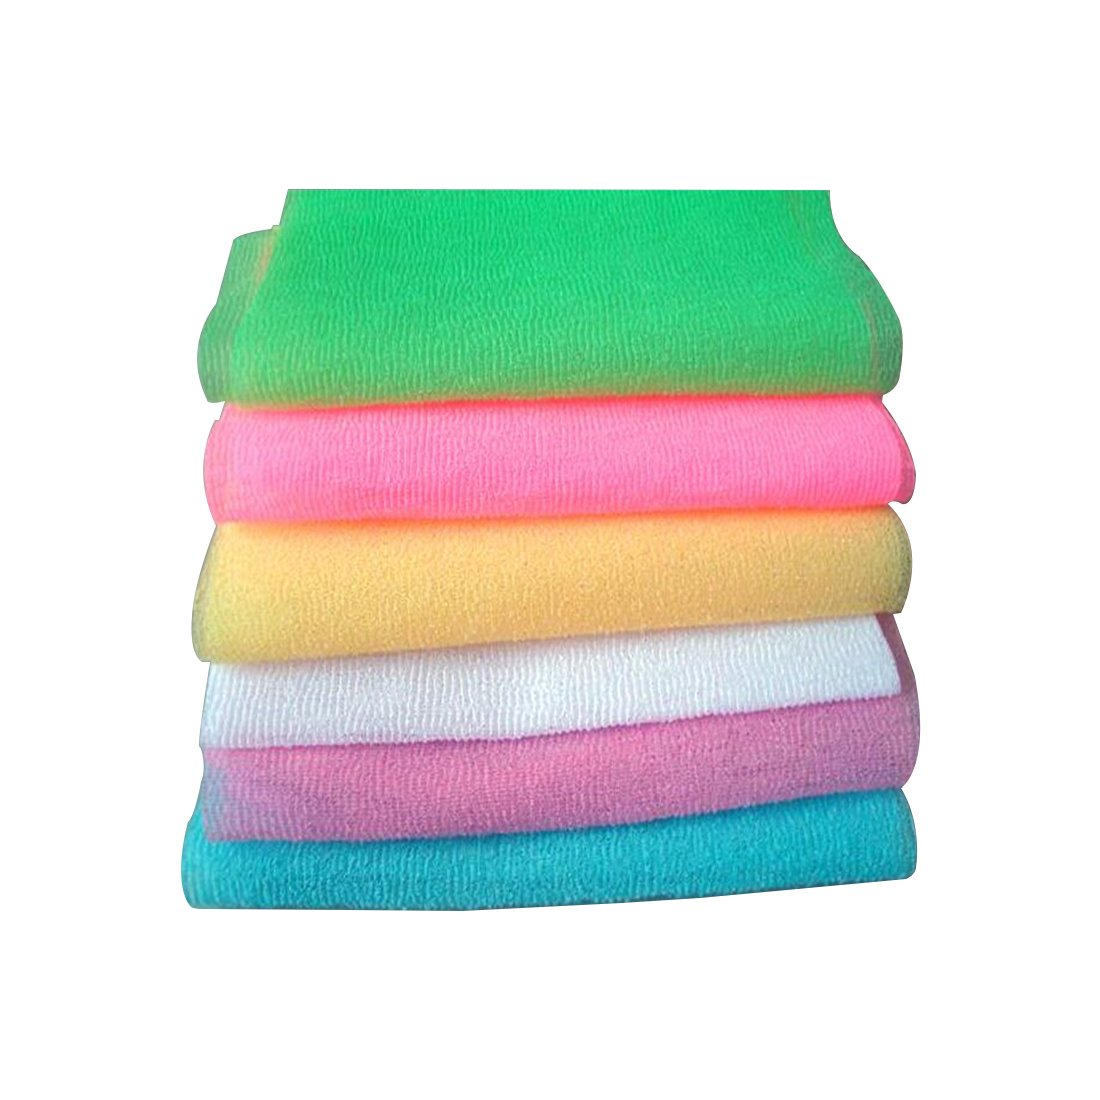 Bath Shower Nylon Scrubbing Towel Skin Cleaning Exfoliating Sponges Fashion Life